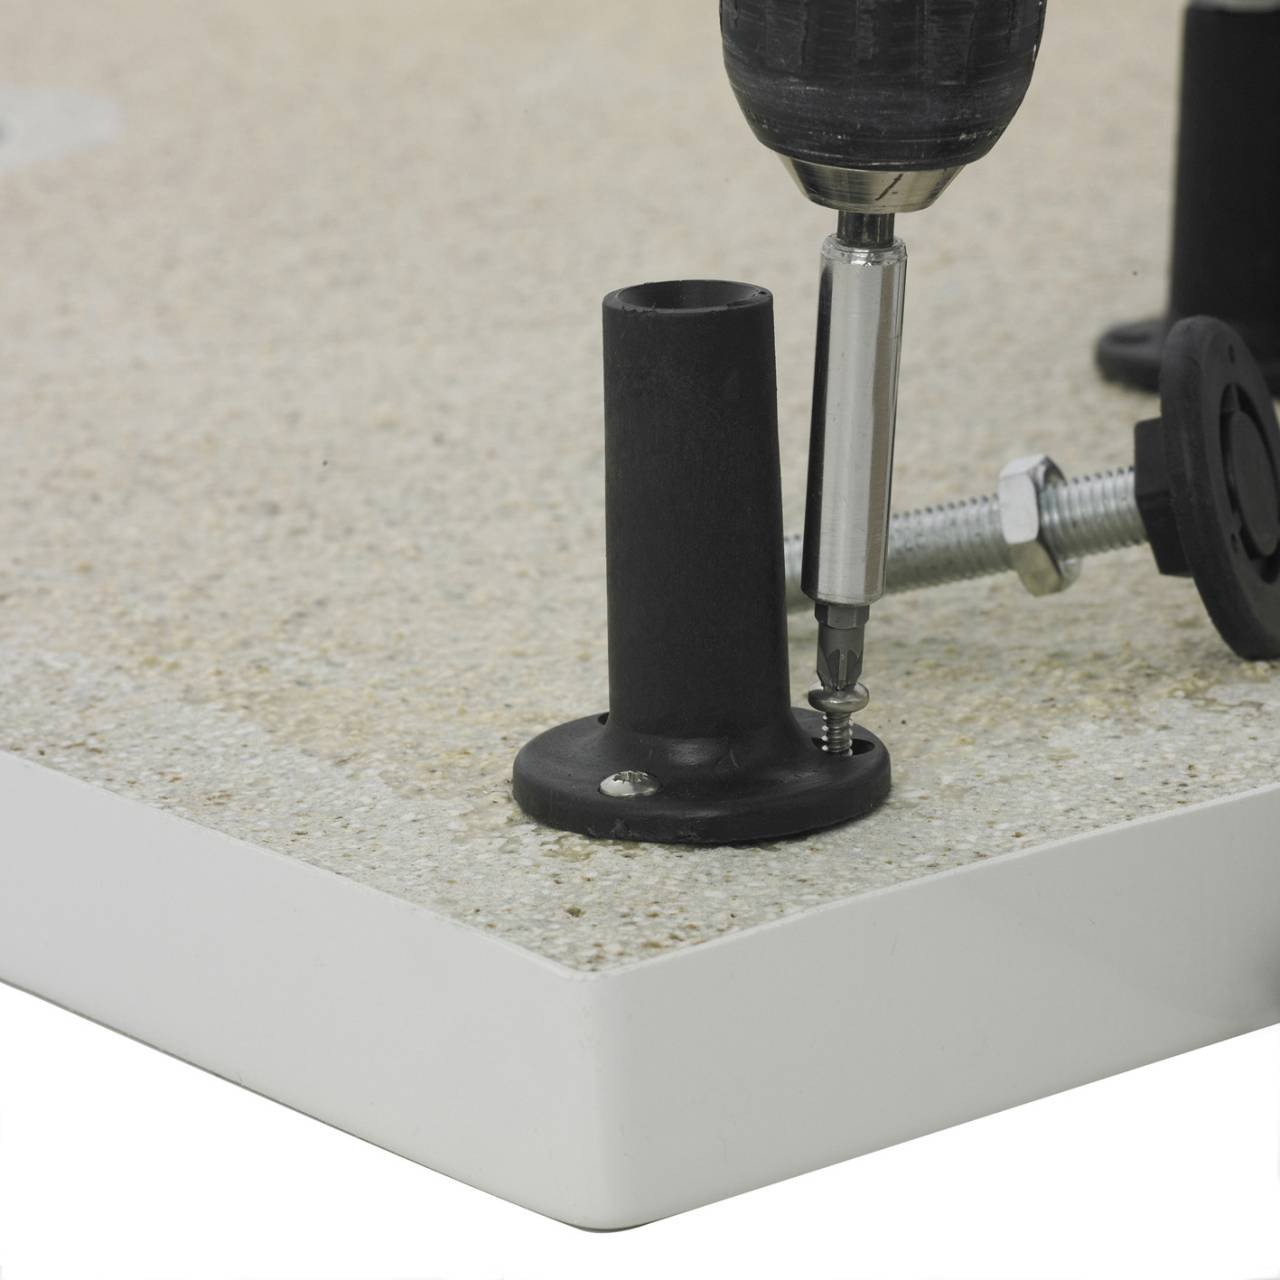 Hudson Reed Leg and Plinth Kit for up to 1000mm x 1000mm Shower Tray - LEGE